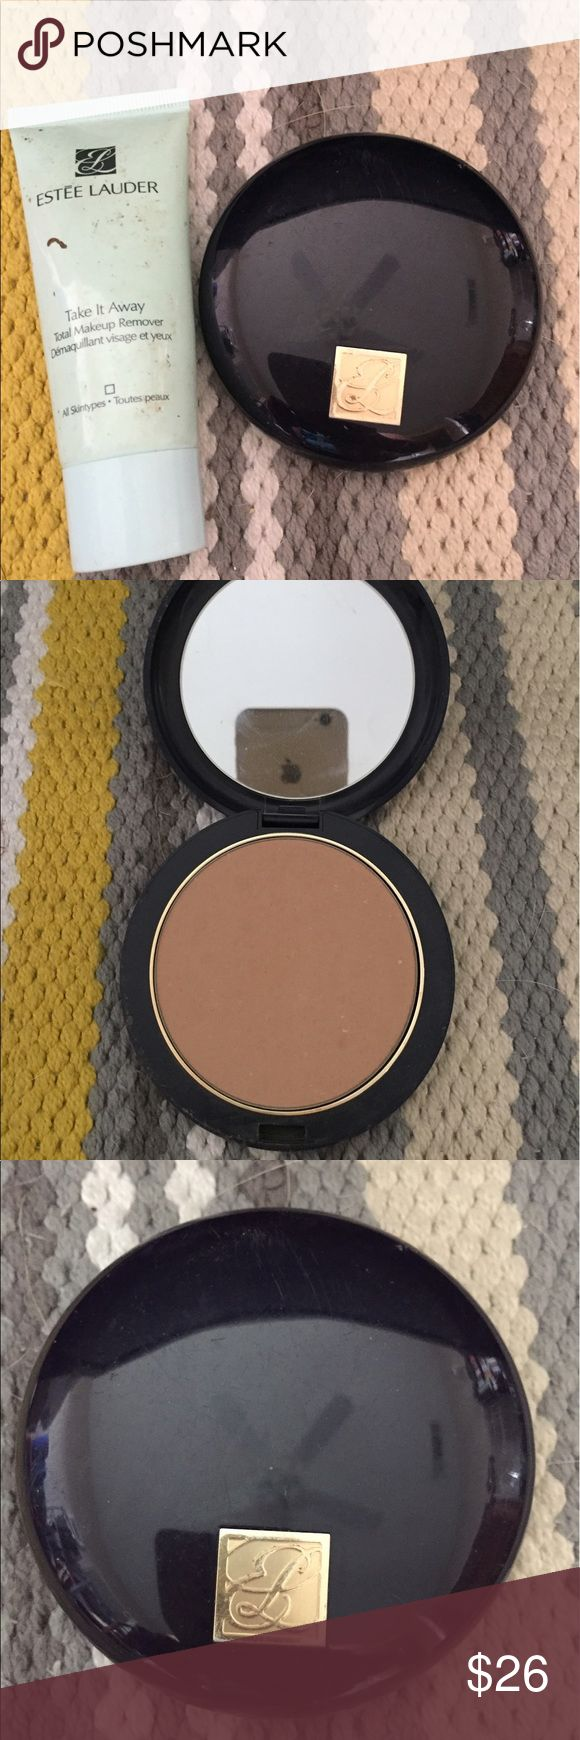 Estée Lauder Double Wear Powder Foundation Free cleanser included, all day wear, medium coverage in medium tone, retail price is $42. Gently used but still full. Estee Lauder Other